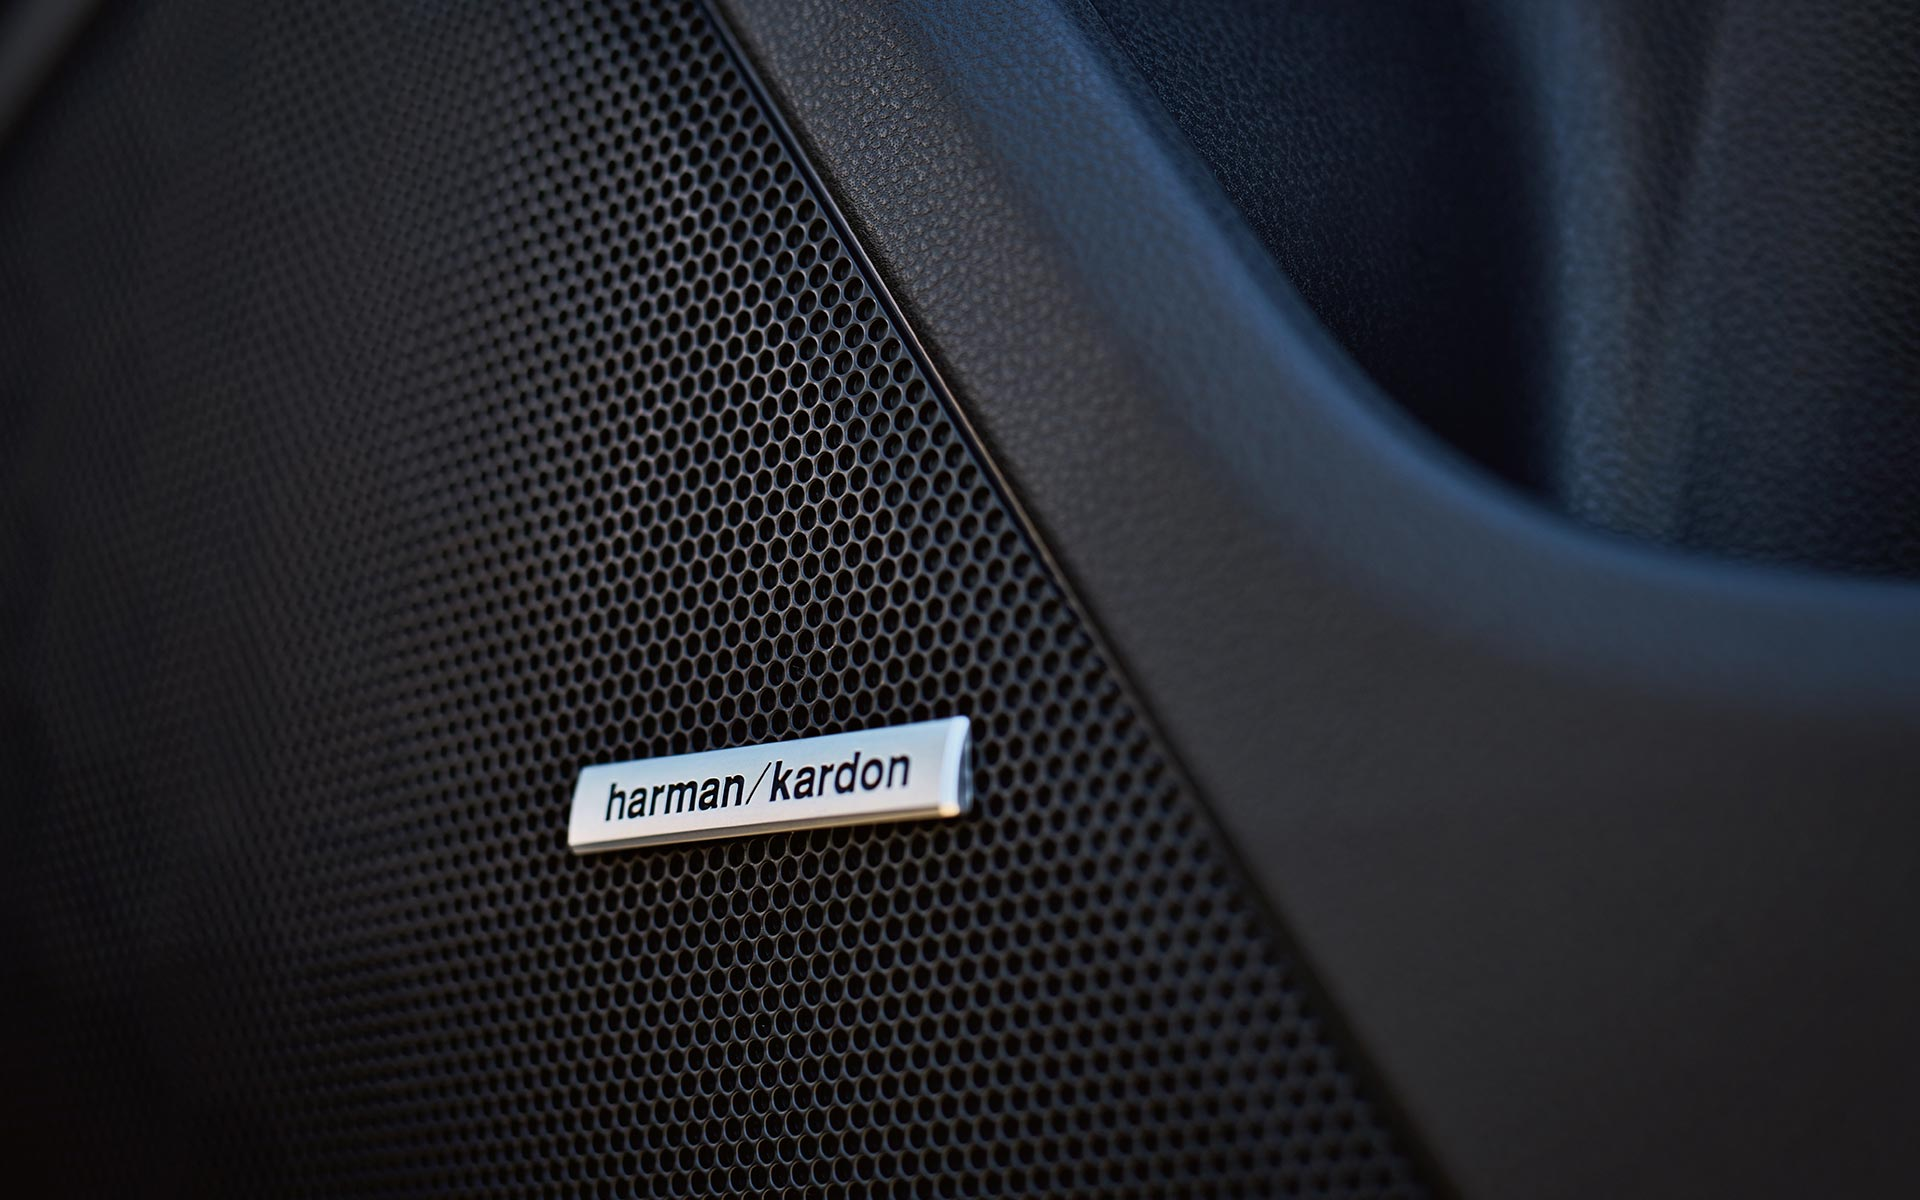 A close-up of one of the Harman Kardon® Premium Audio speakers in a 2020 Impreza.